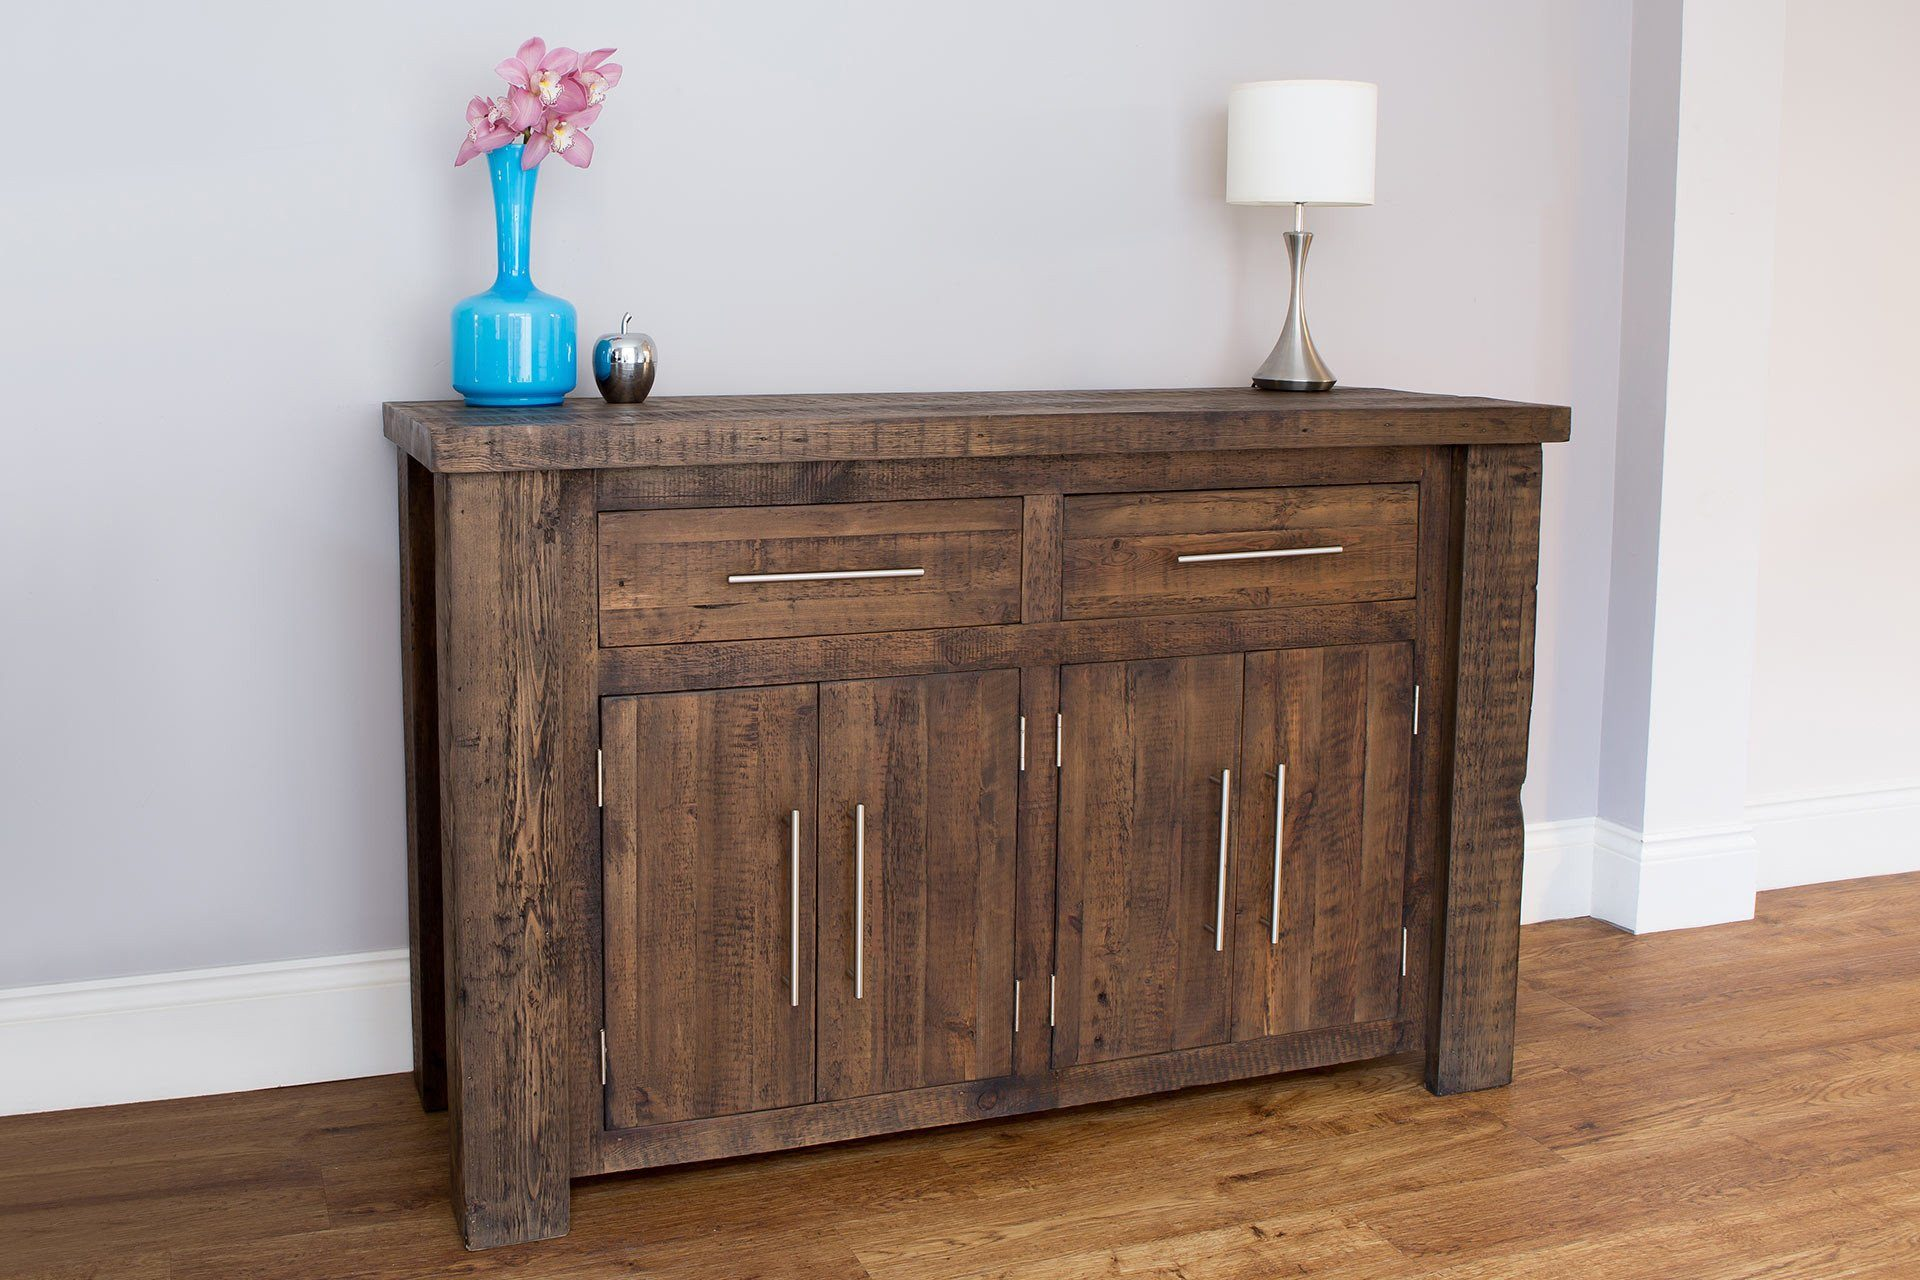 Classic 144.5cm Sideboard With Bar Handles